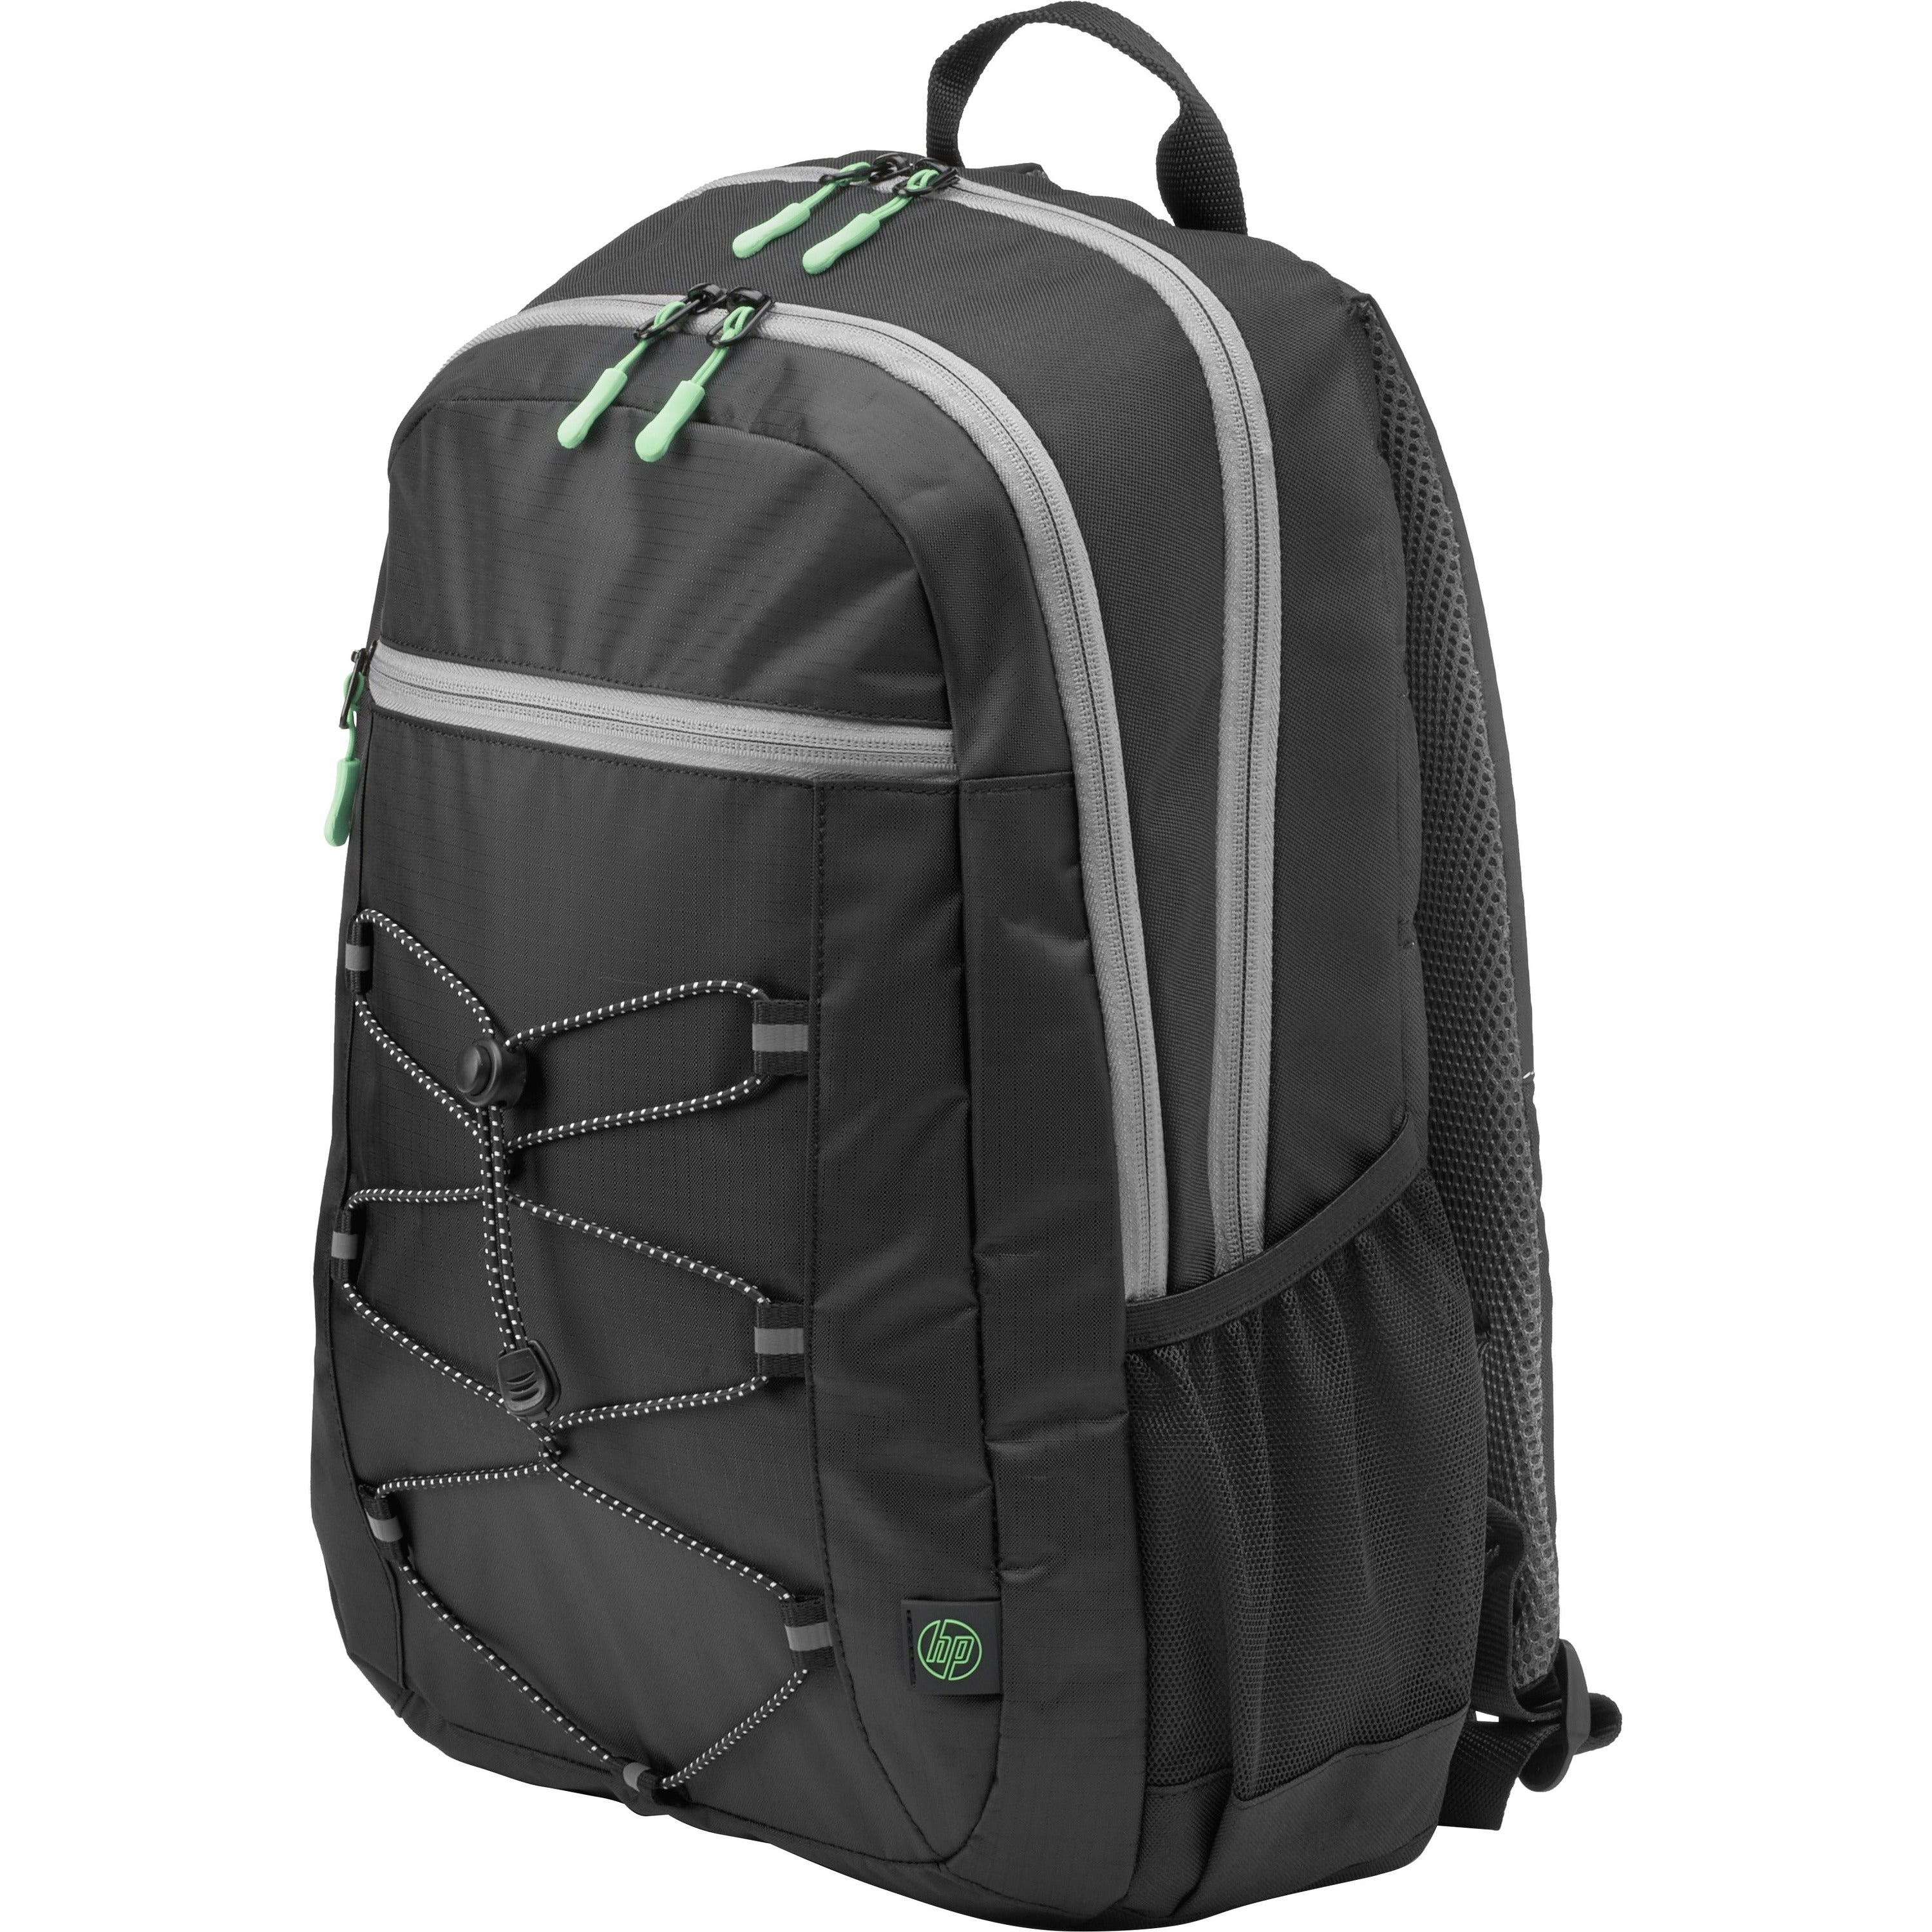 972592a30729 Laptop Carrying Backpack- Fenix Toulouse Handball